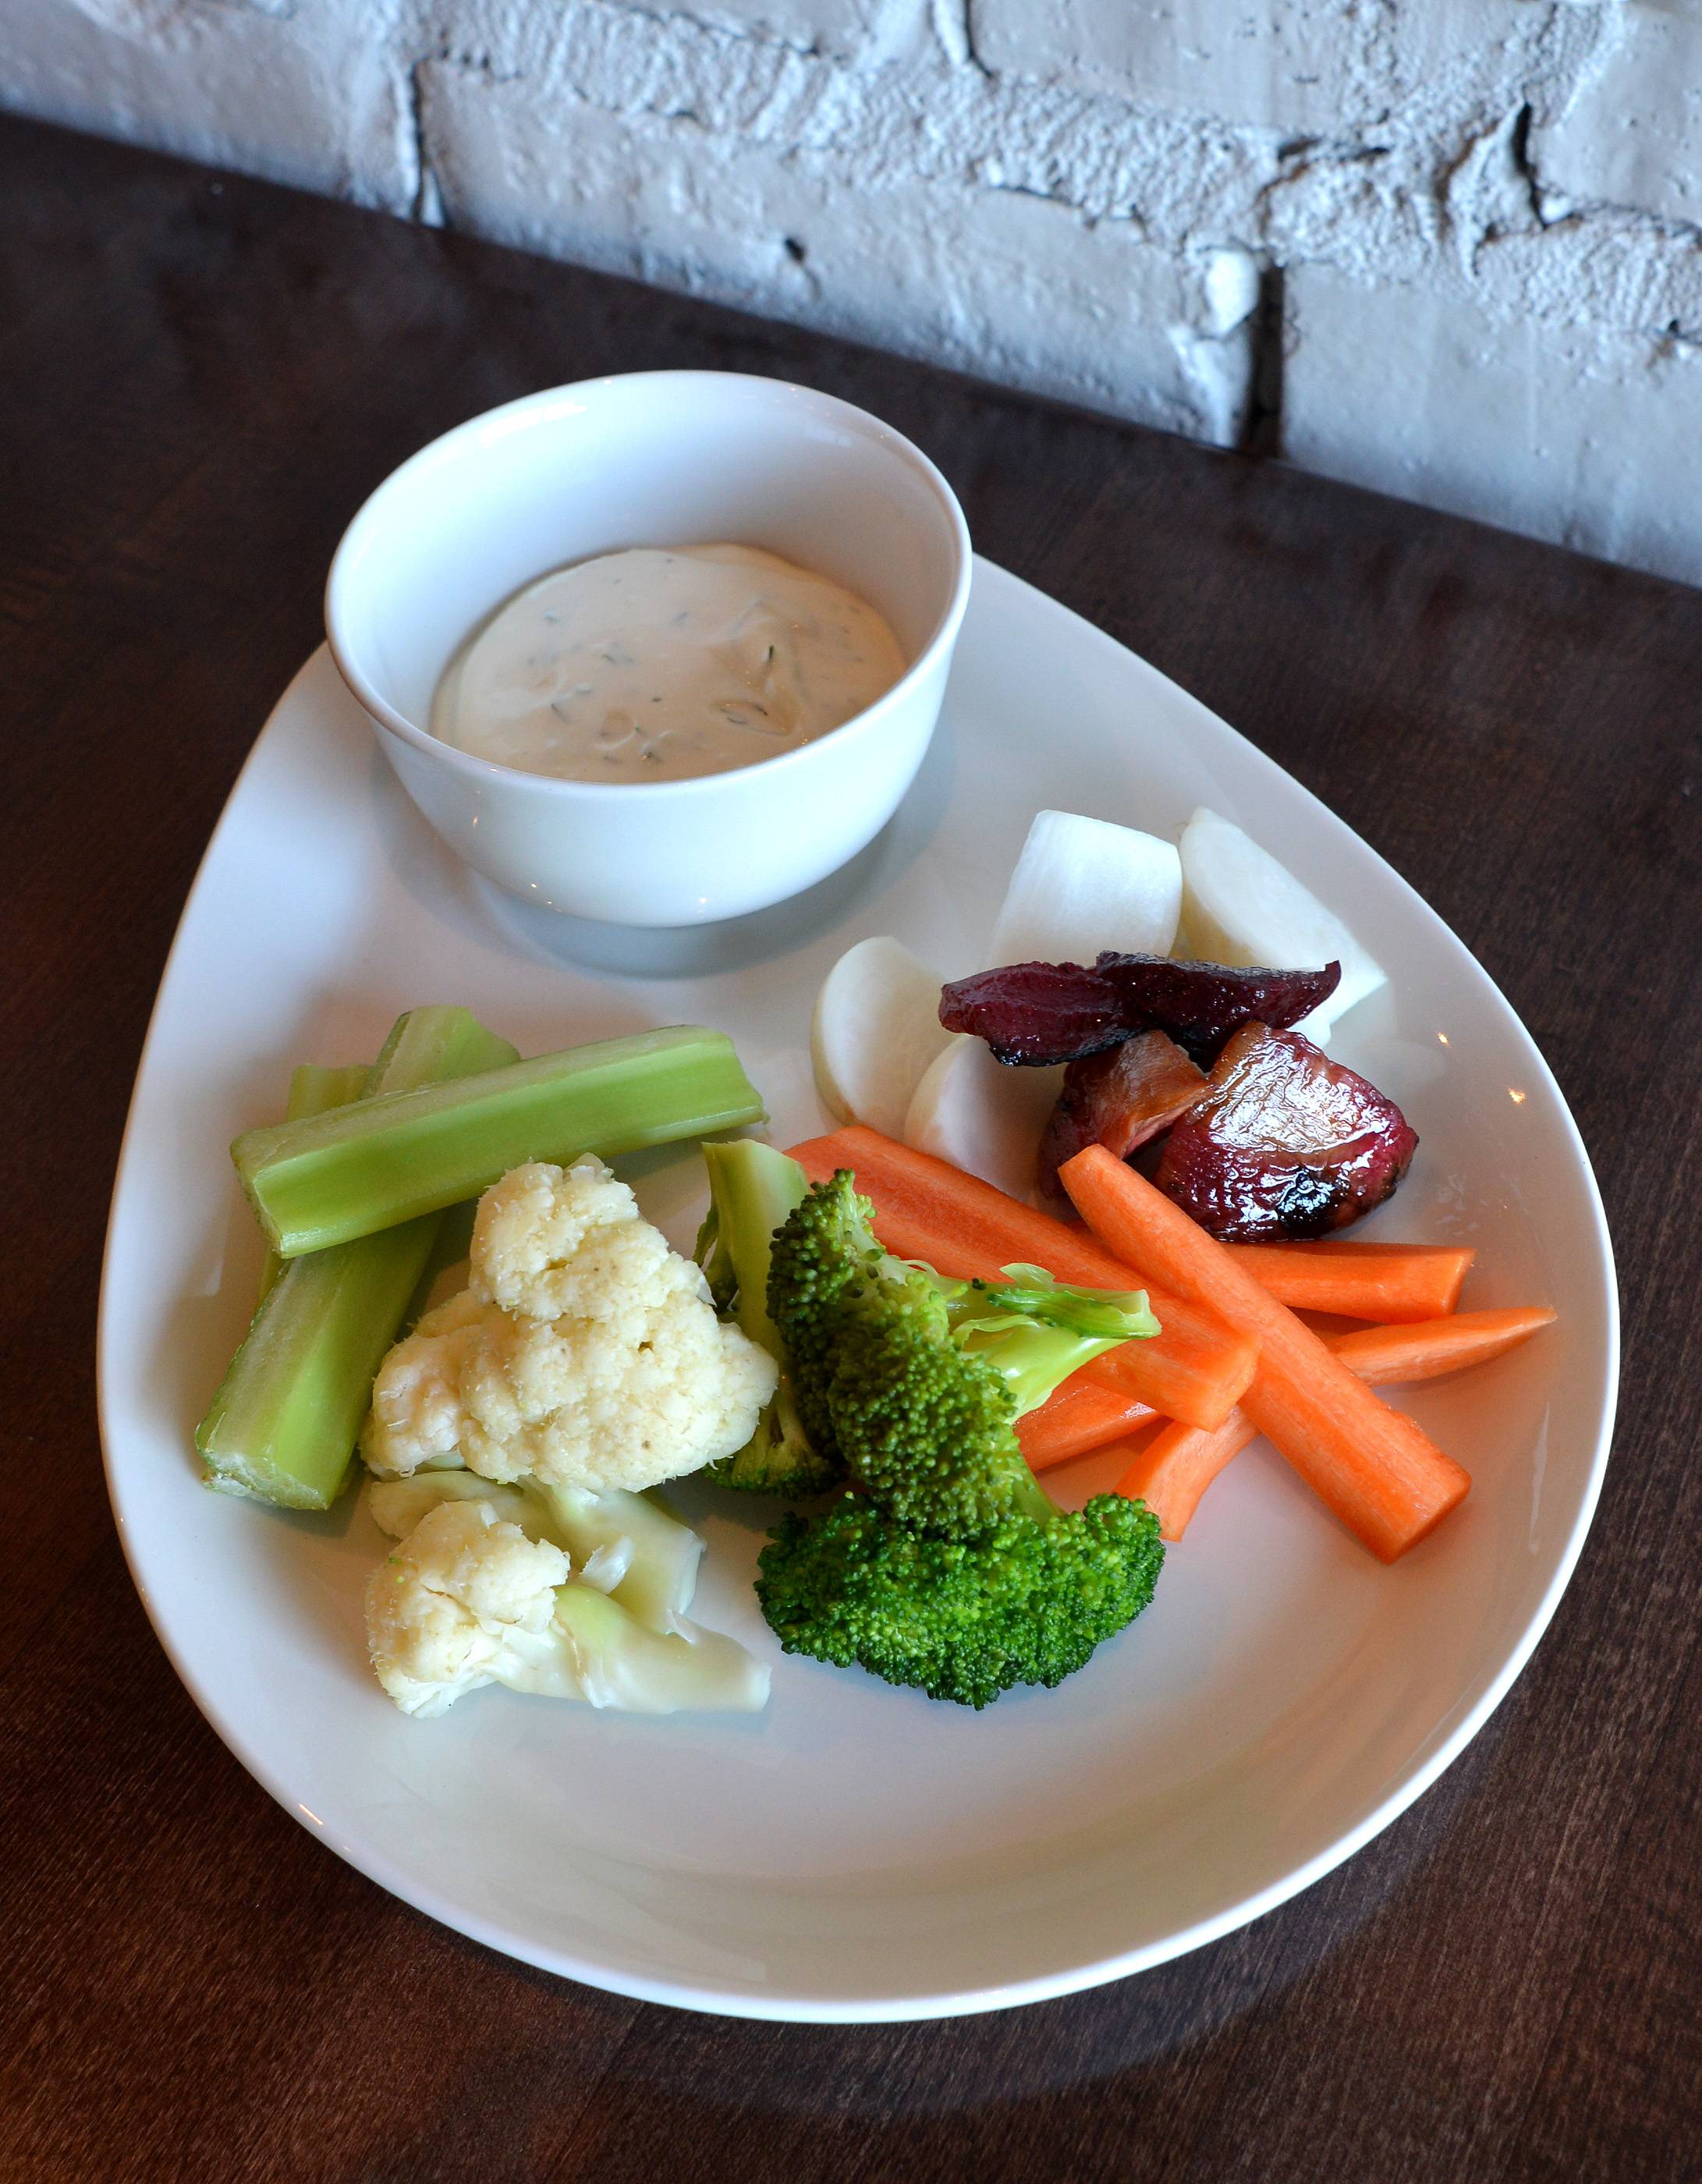 The family-friendly Vistro features simple, fresh selections -- including seasonal vegetables with house ranch dressing.